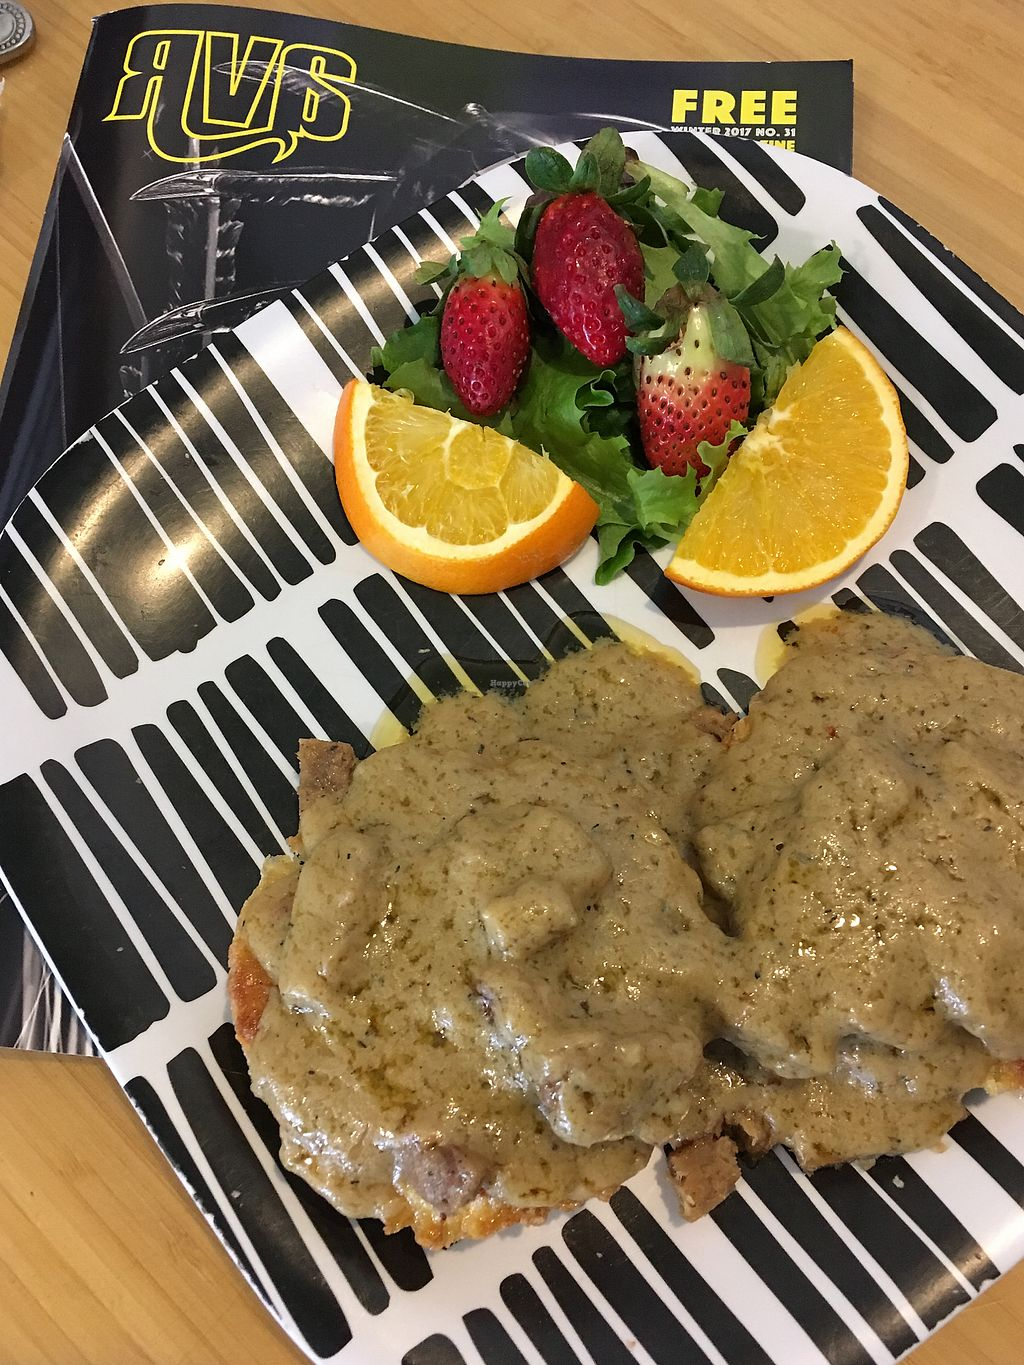 """Photo of Lamplighter - Addison St  by <a href=""""/members/profile/manbo"""">manbo</a> <br/>Vegan biscuits and gravy <br/> December 27, 2017  - <a href='/contact/abuse/image/42675/339666'>Report</a>"""